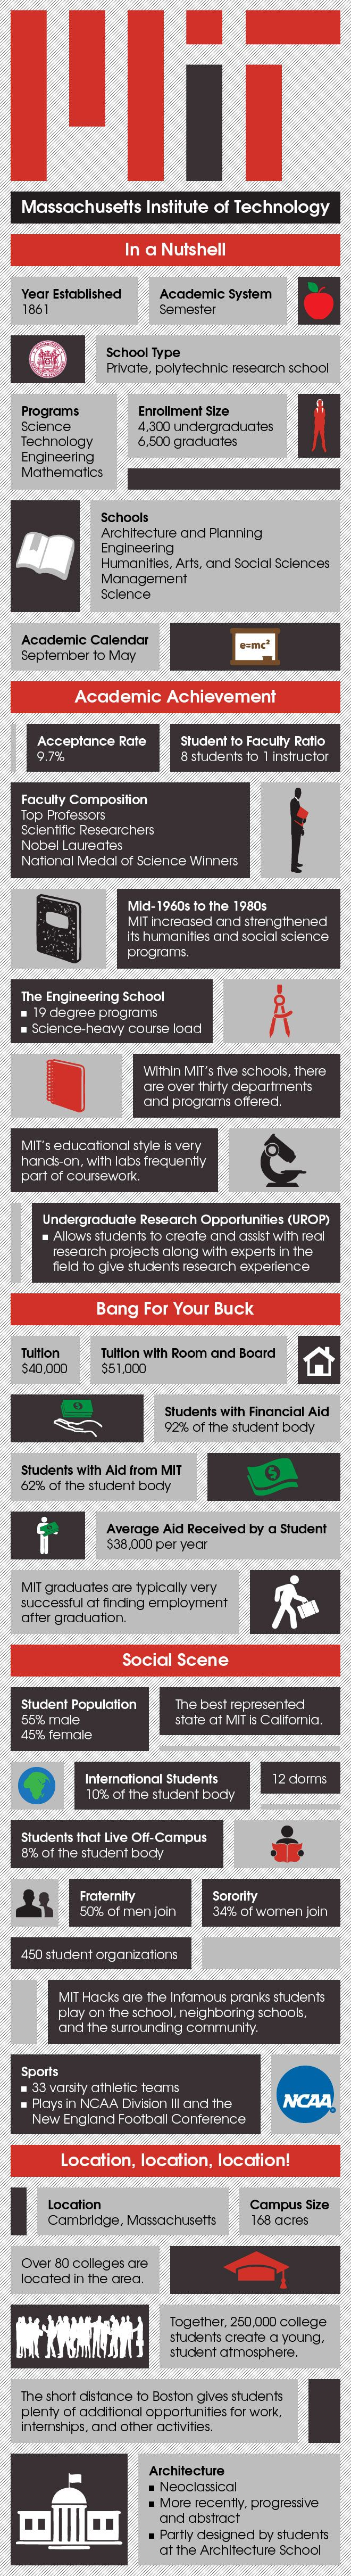 Massachusetts Institute of Technology (MIT) Infographic